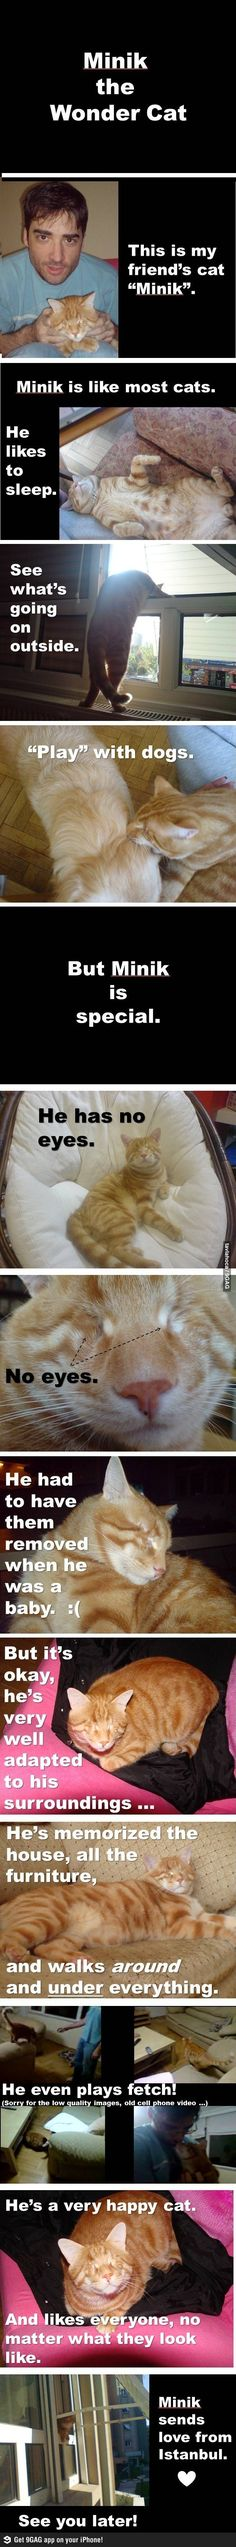 Cats are amazing